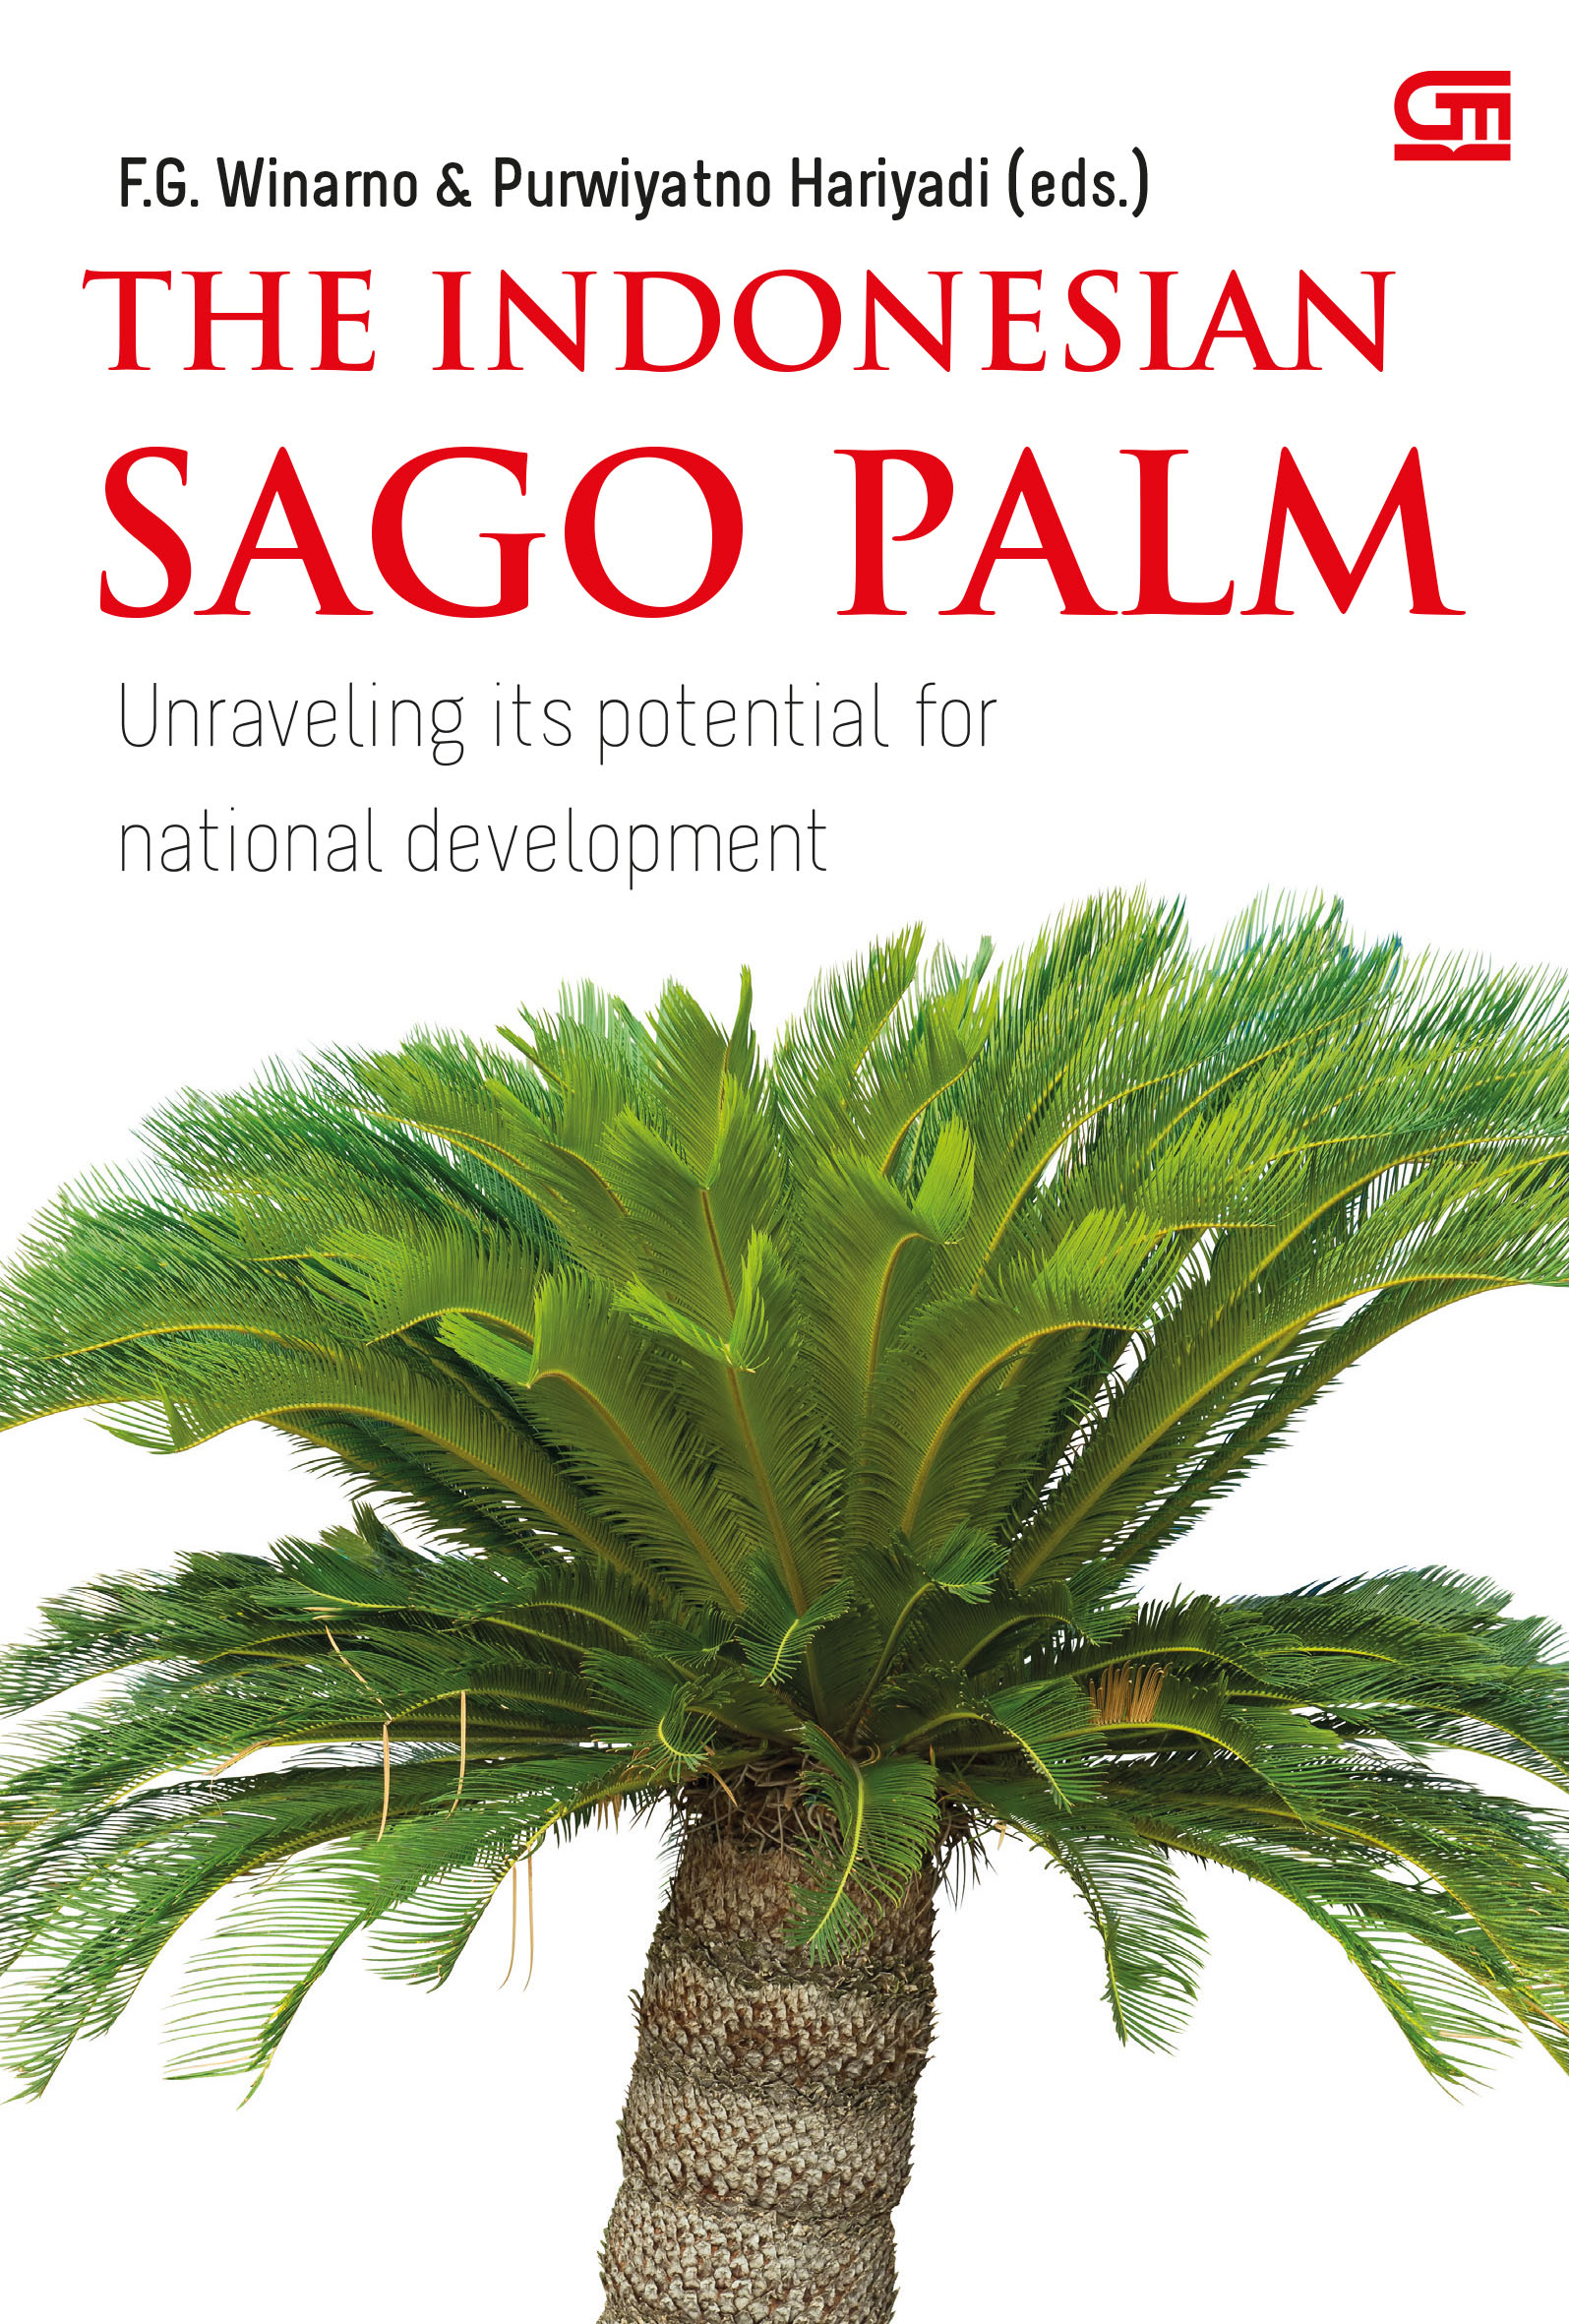 The Indonesian Sago Palm